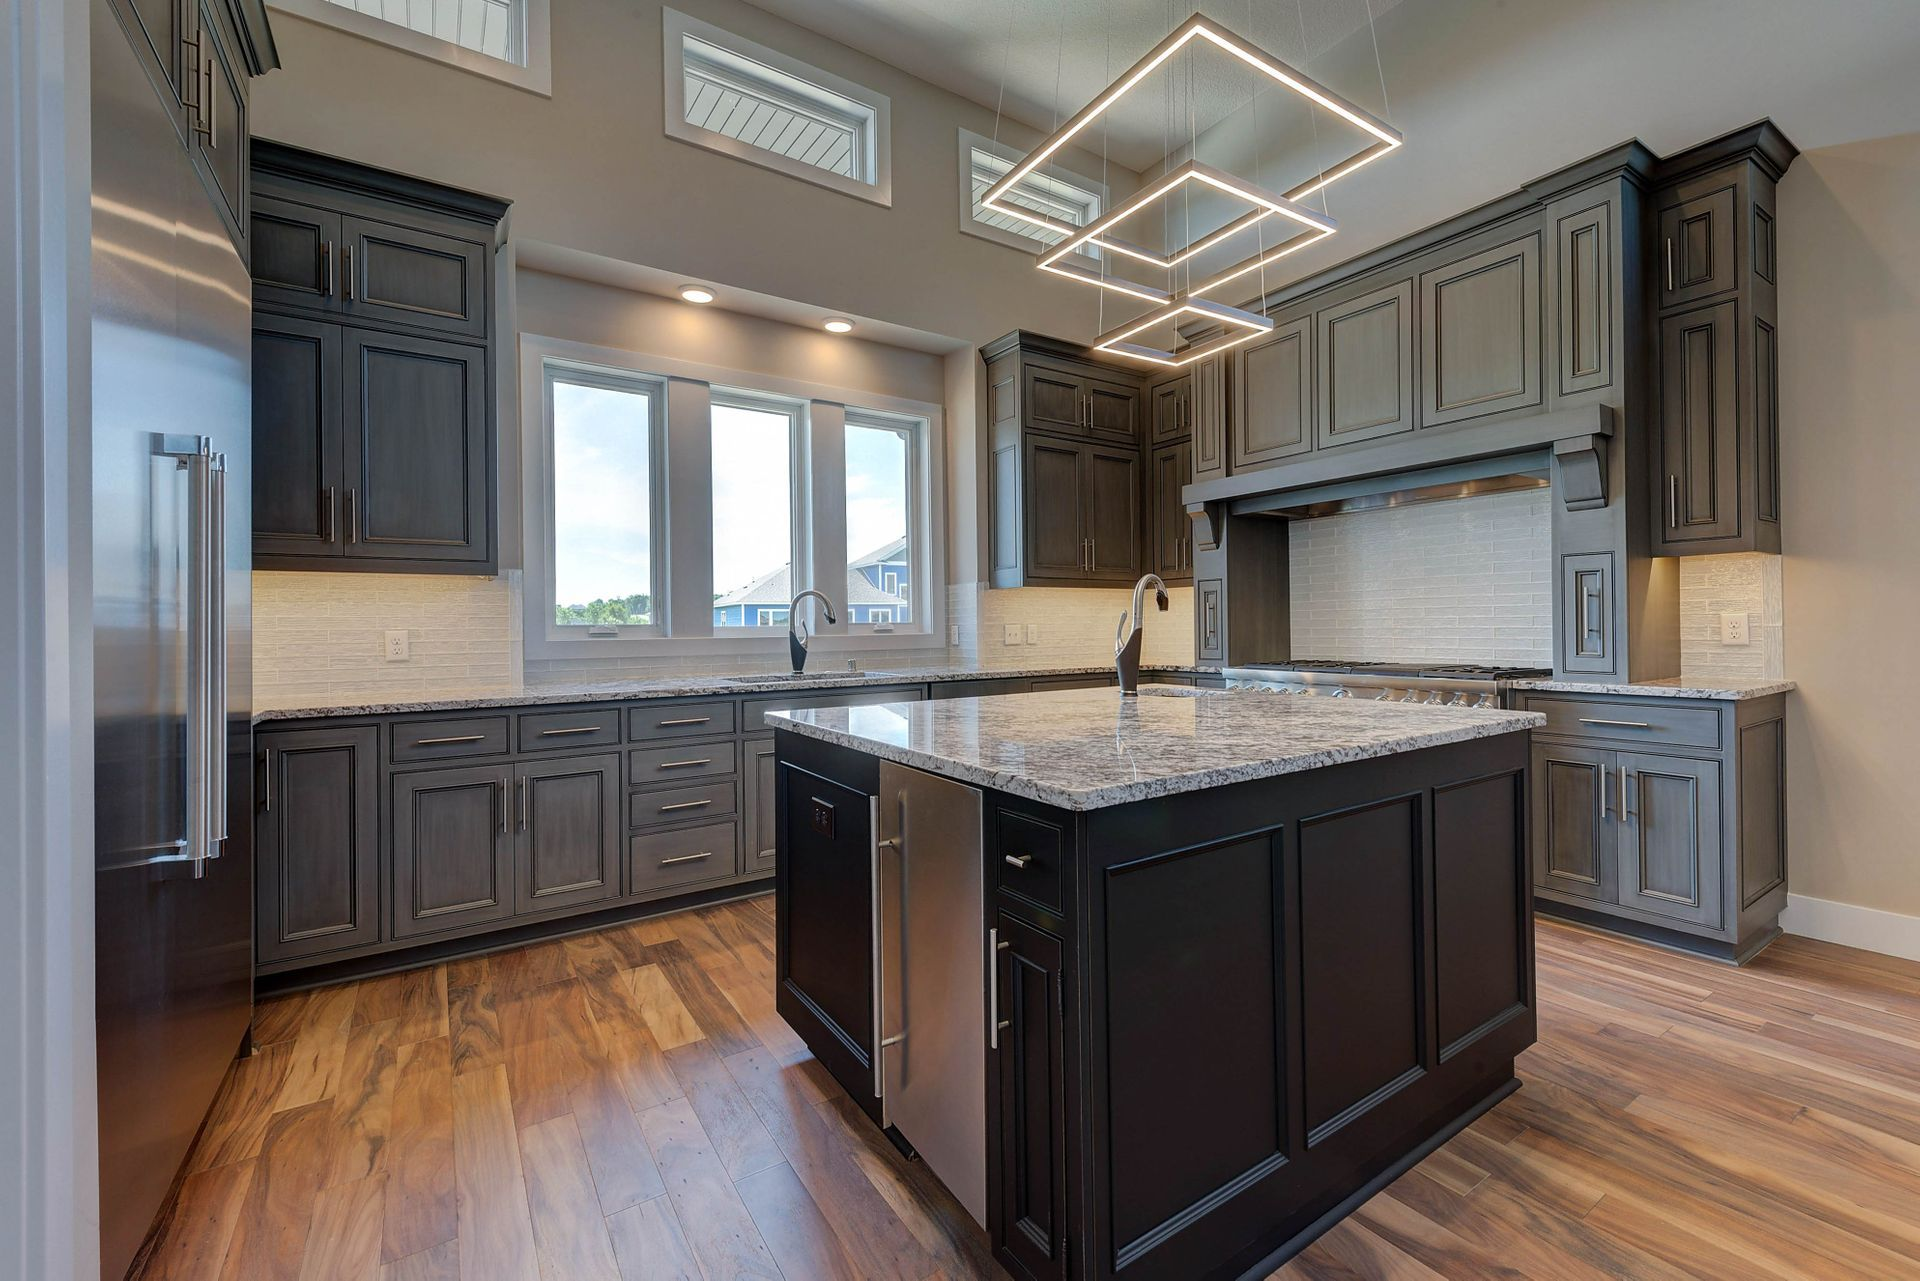 How About That Cool Light Centered In This Gourmet Kitchen Custom Built By Fieldstone Family Homes For A Client In Shakopee Grey Cabinets Home Home And Family